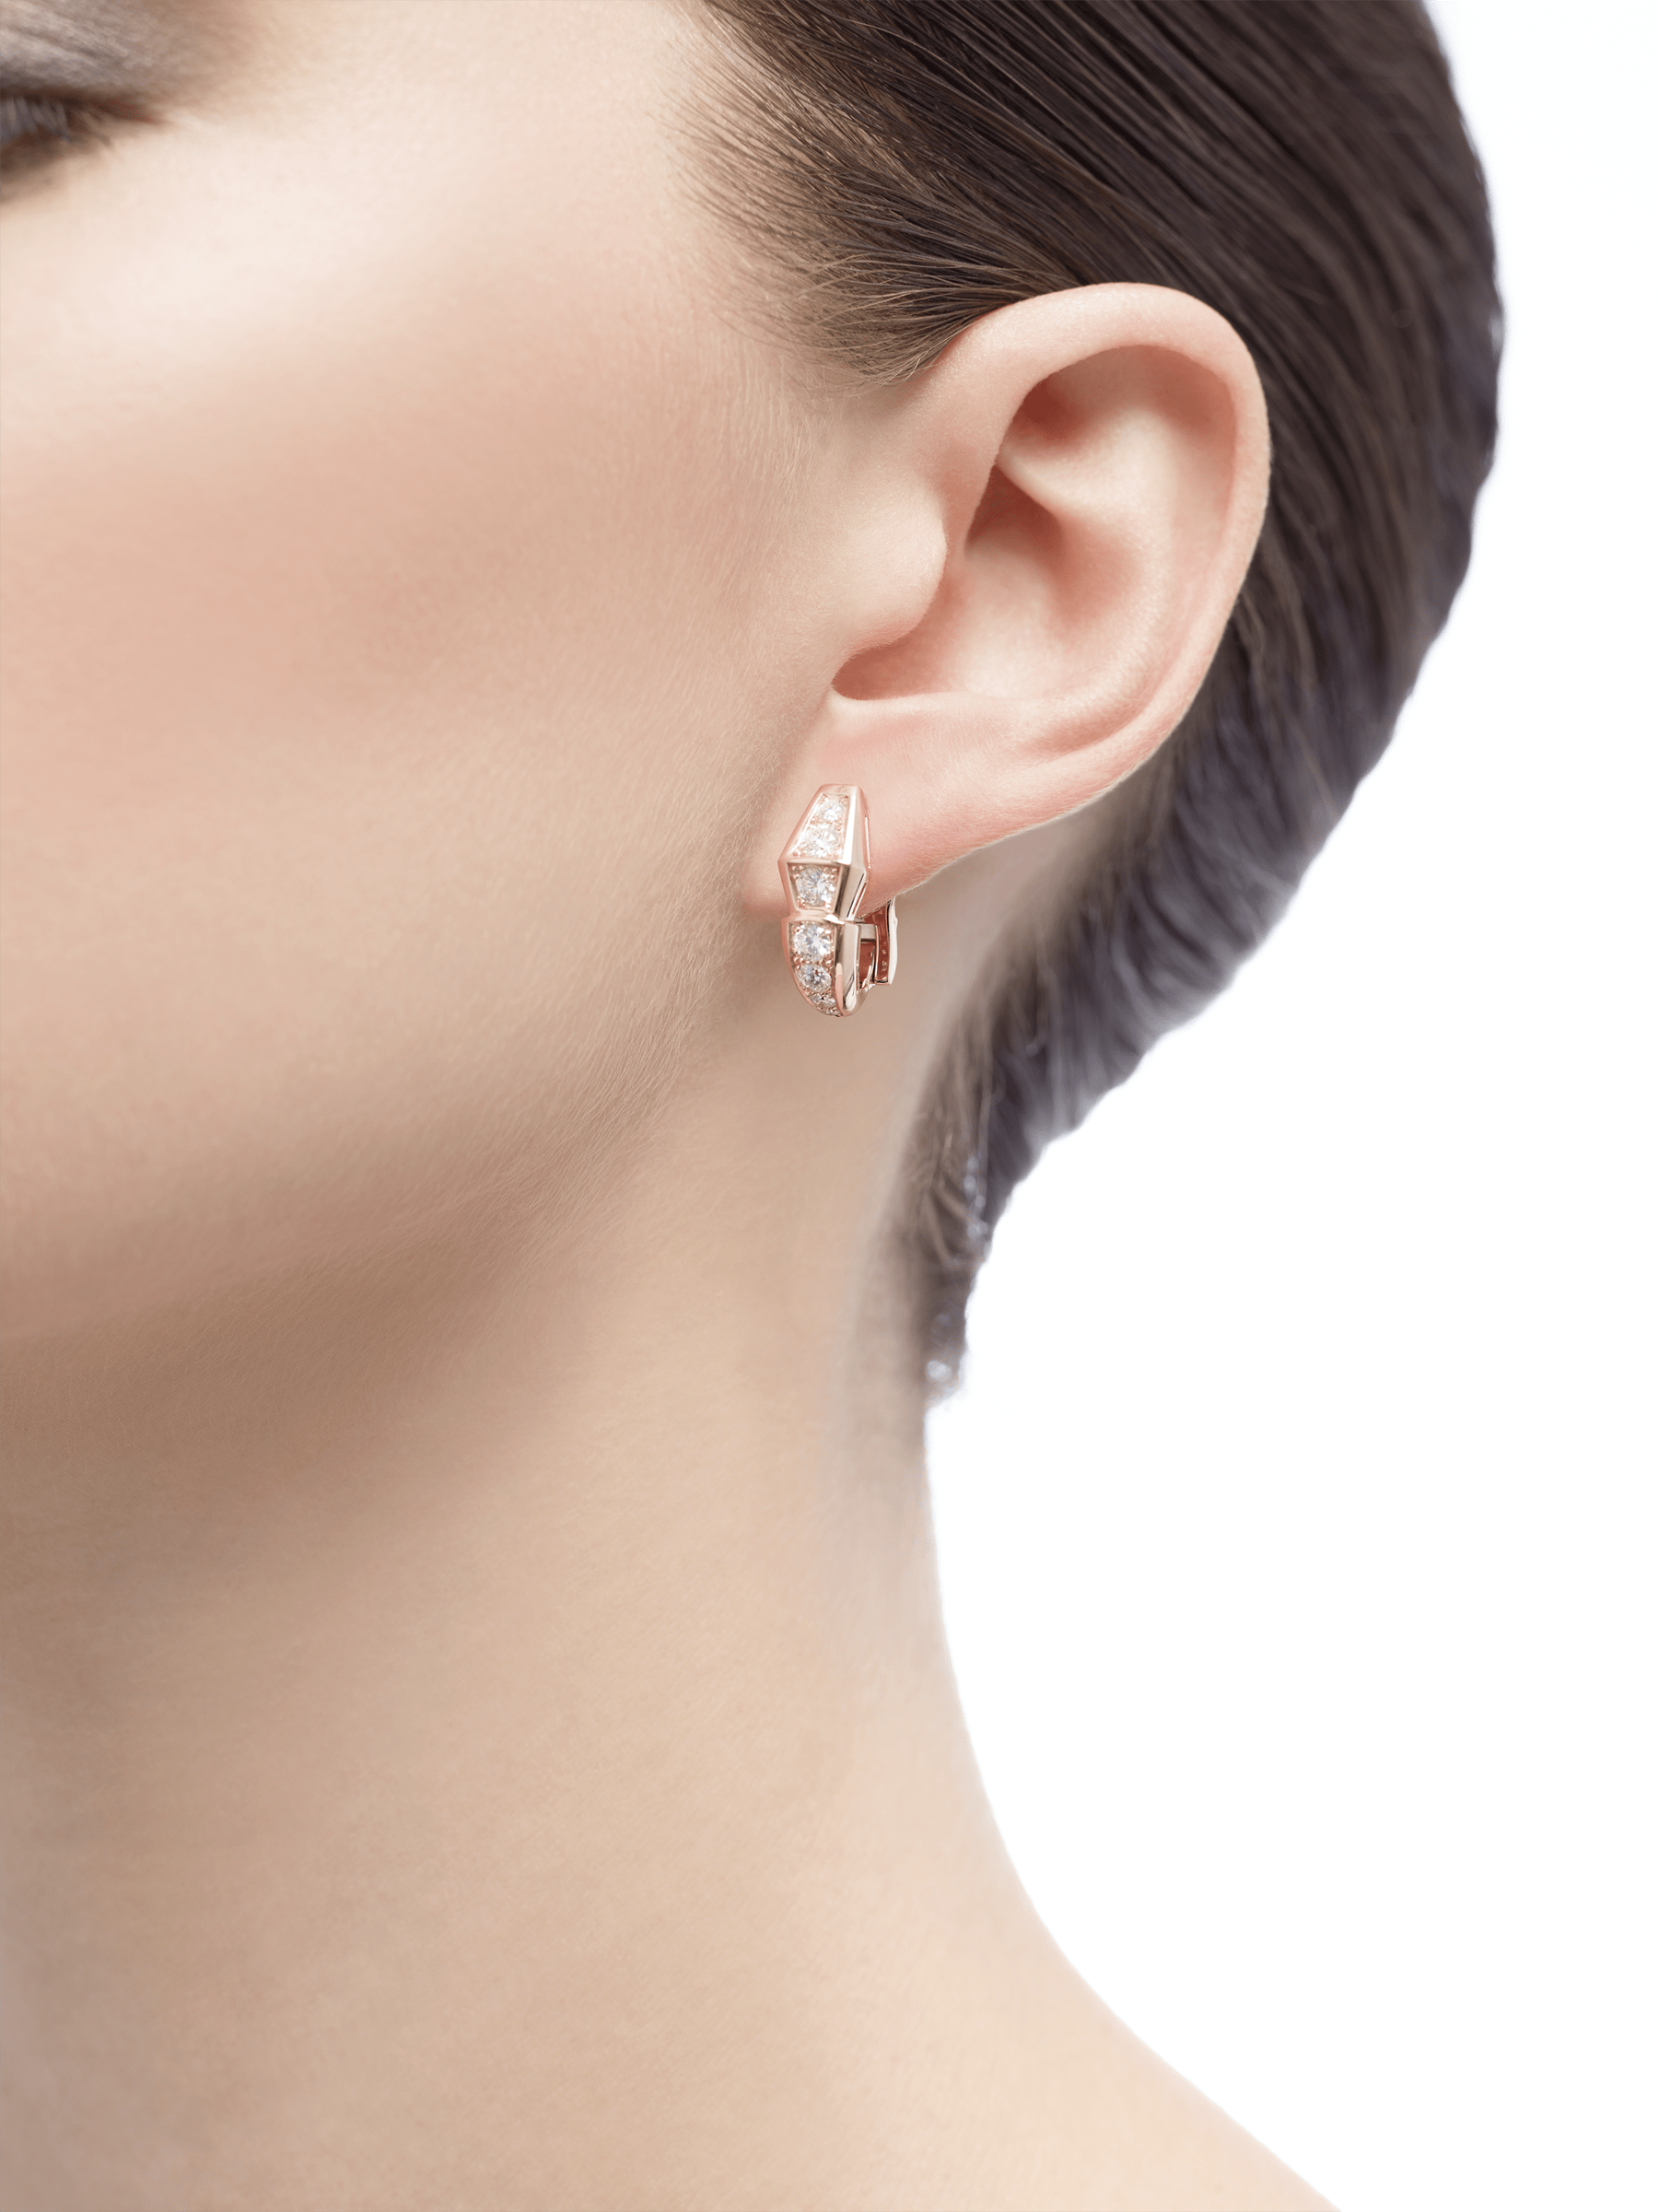 Serpenti Viper earrings in 18 kt rose gold, set with pavé diamonds. 354035 image 3